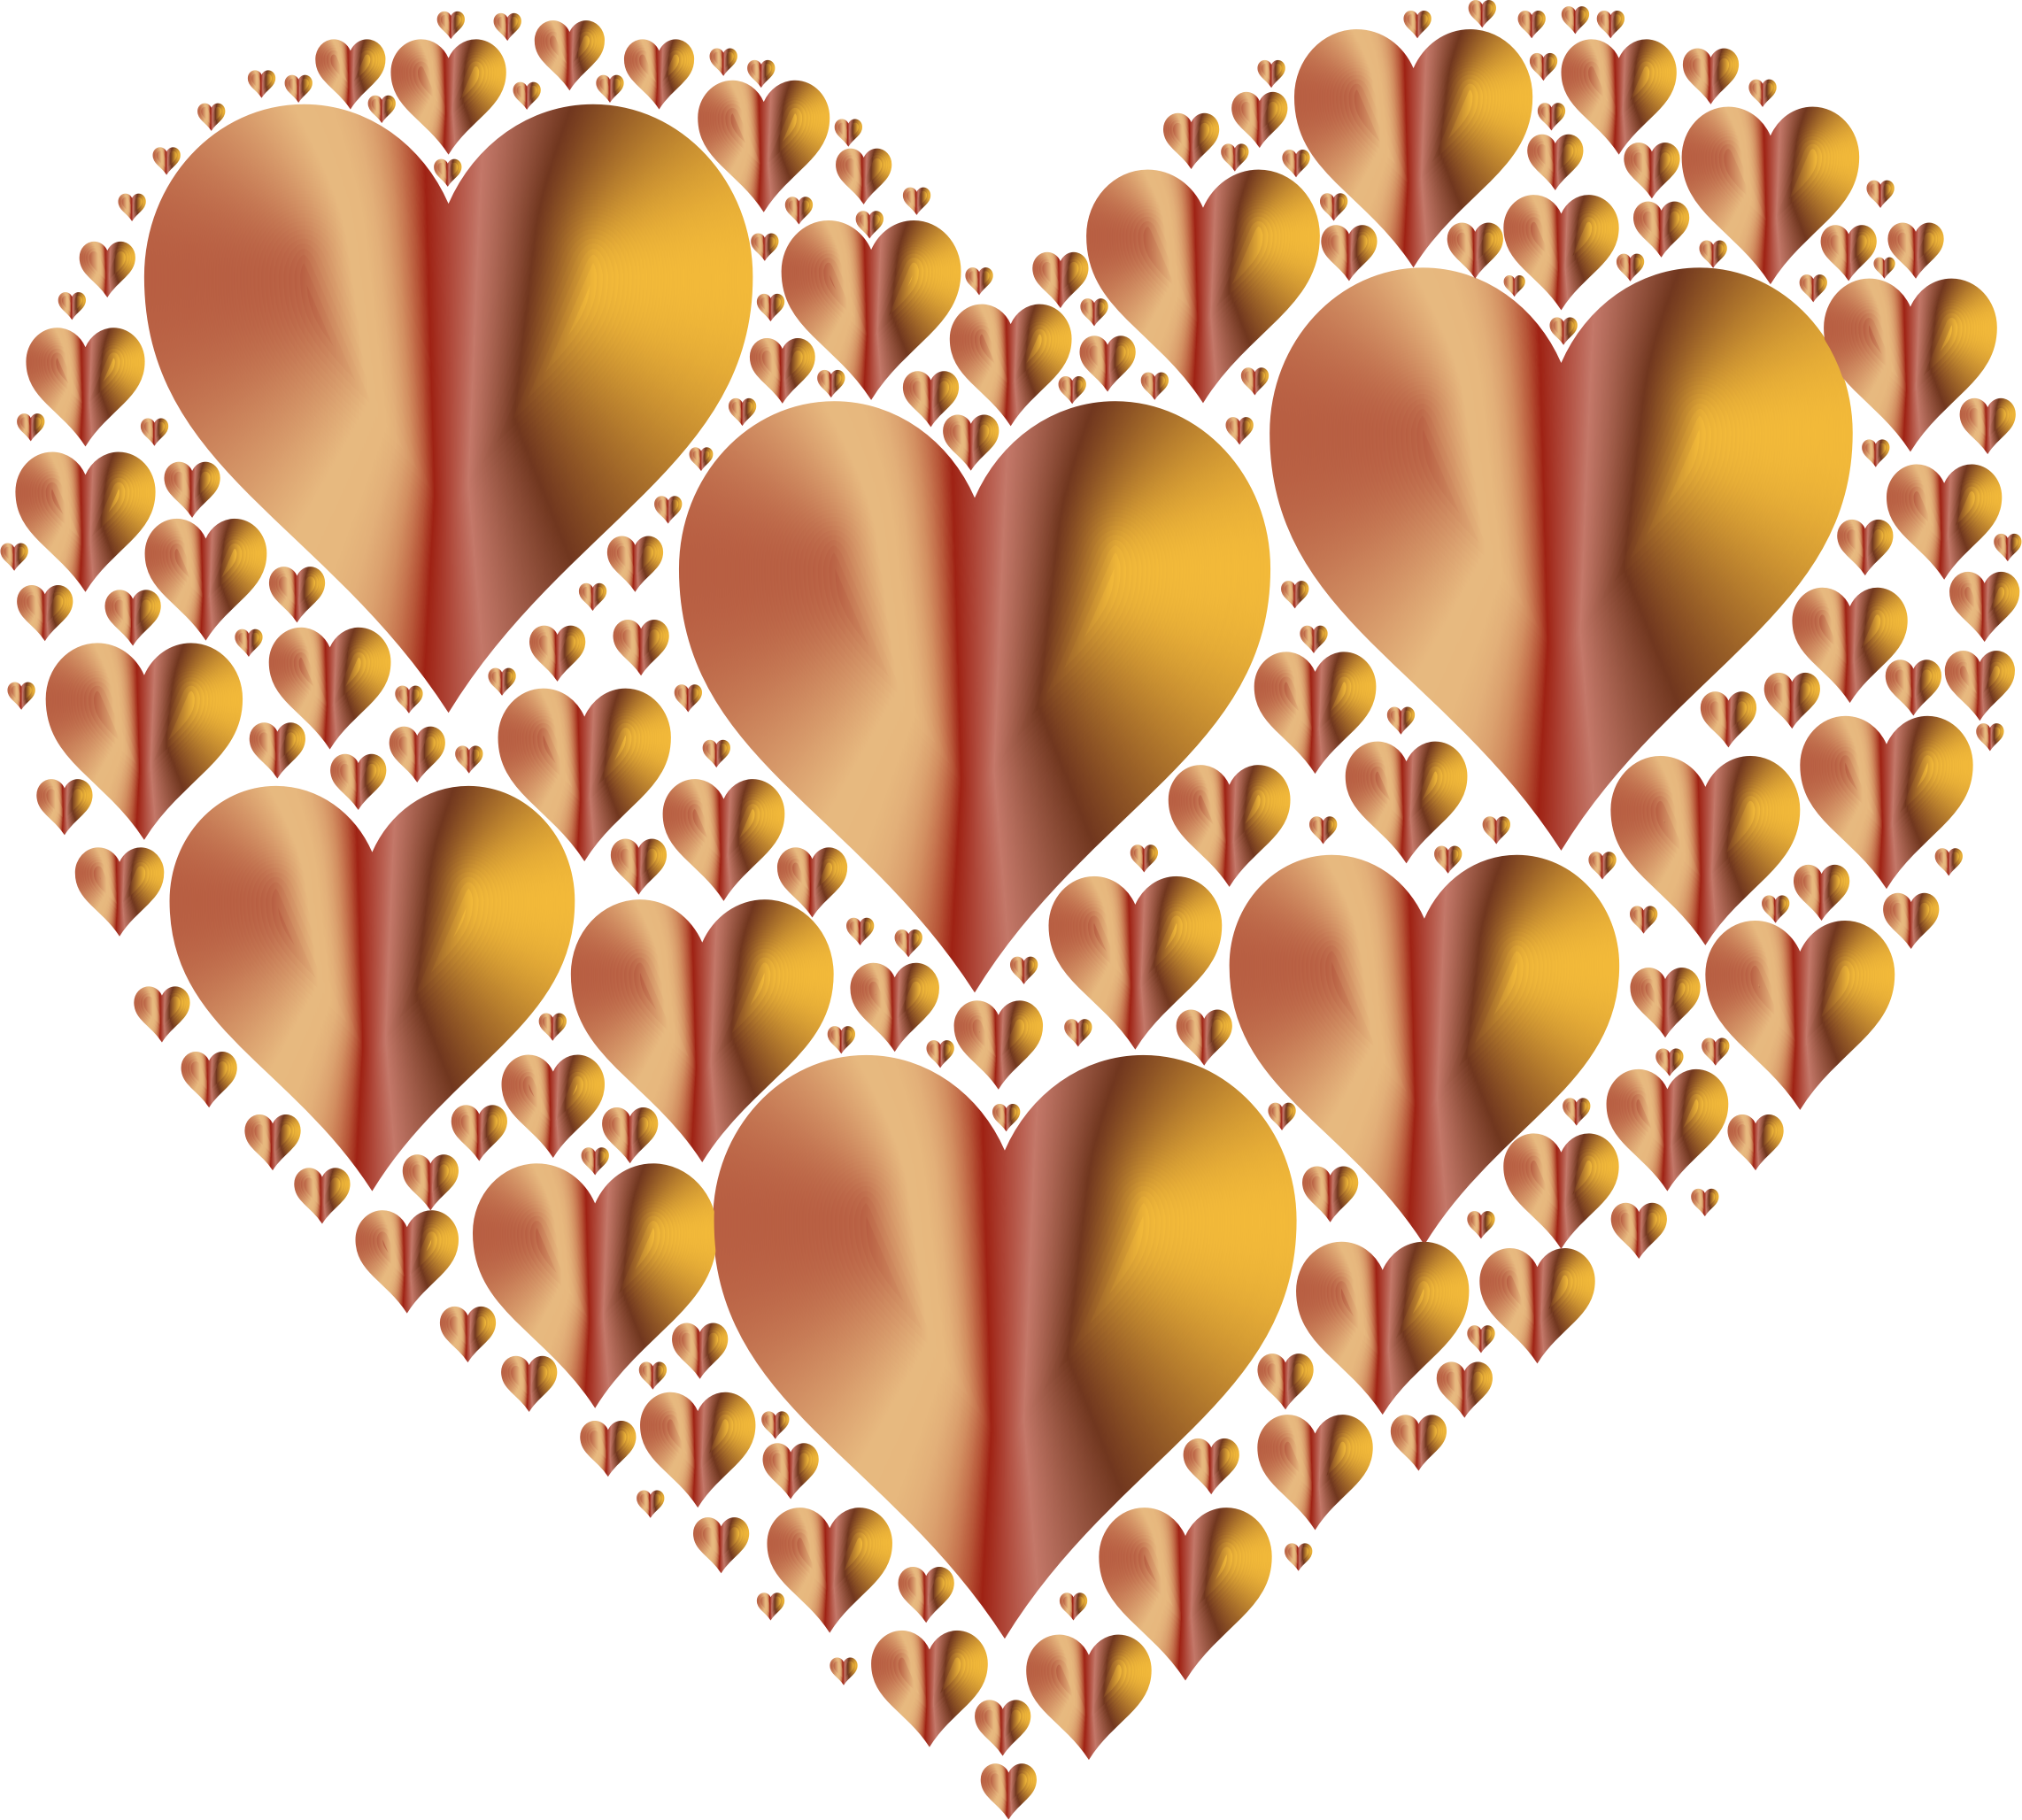 Hearts In Heart Rejuvenated 7 No Background by GDJ